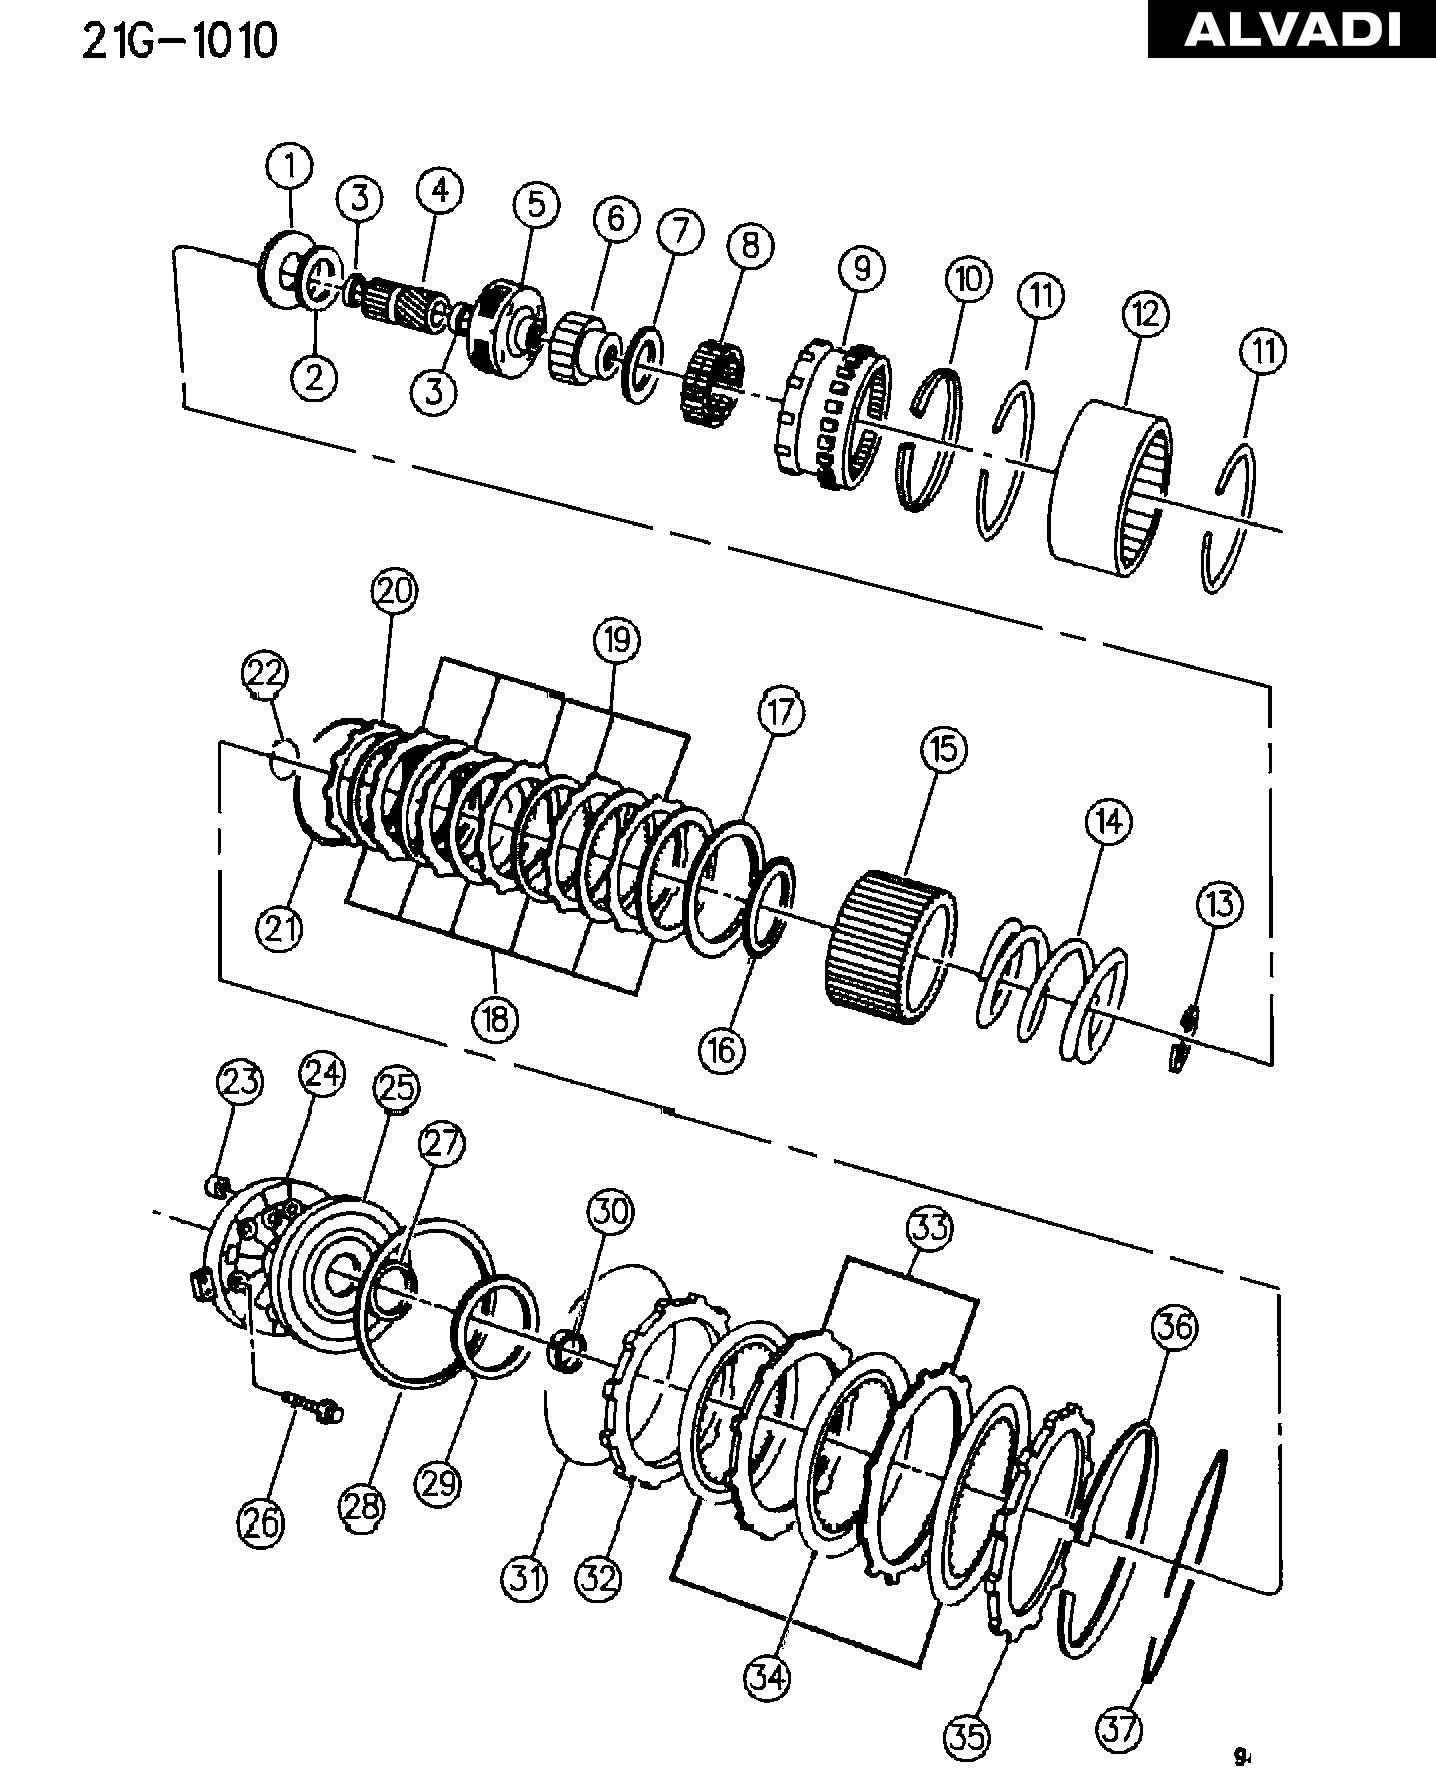 Clutch Diagram For A Manual Transmission In 2020 Manual Transmission Transmission Automatic Transmission